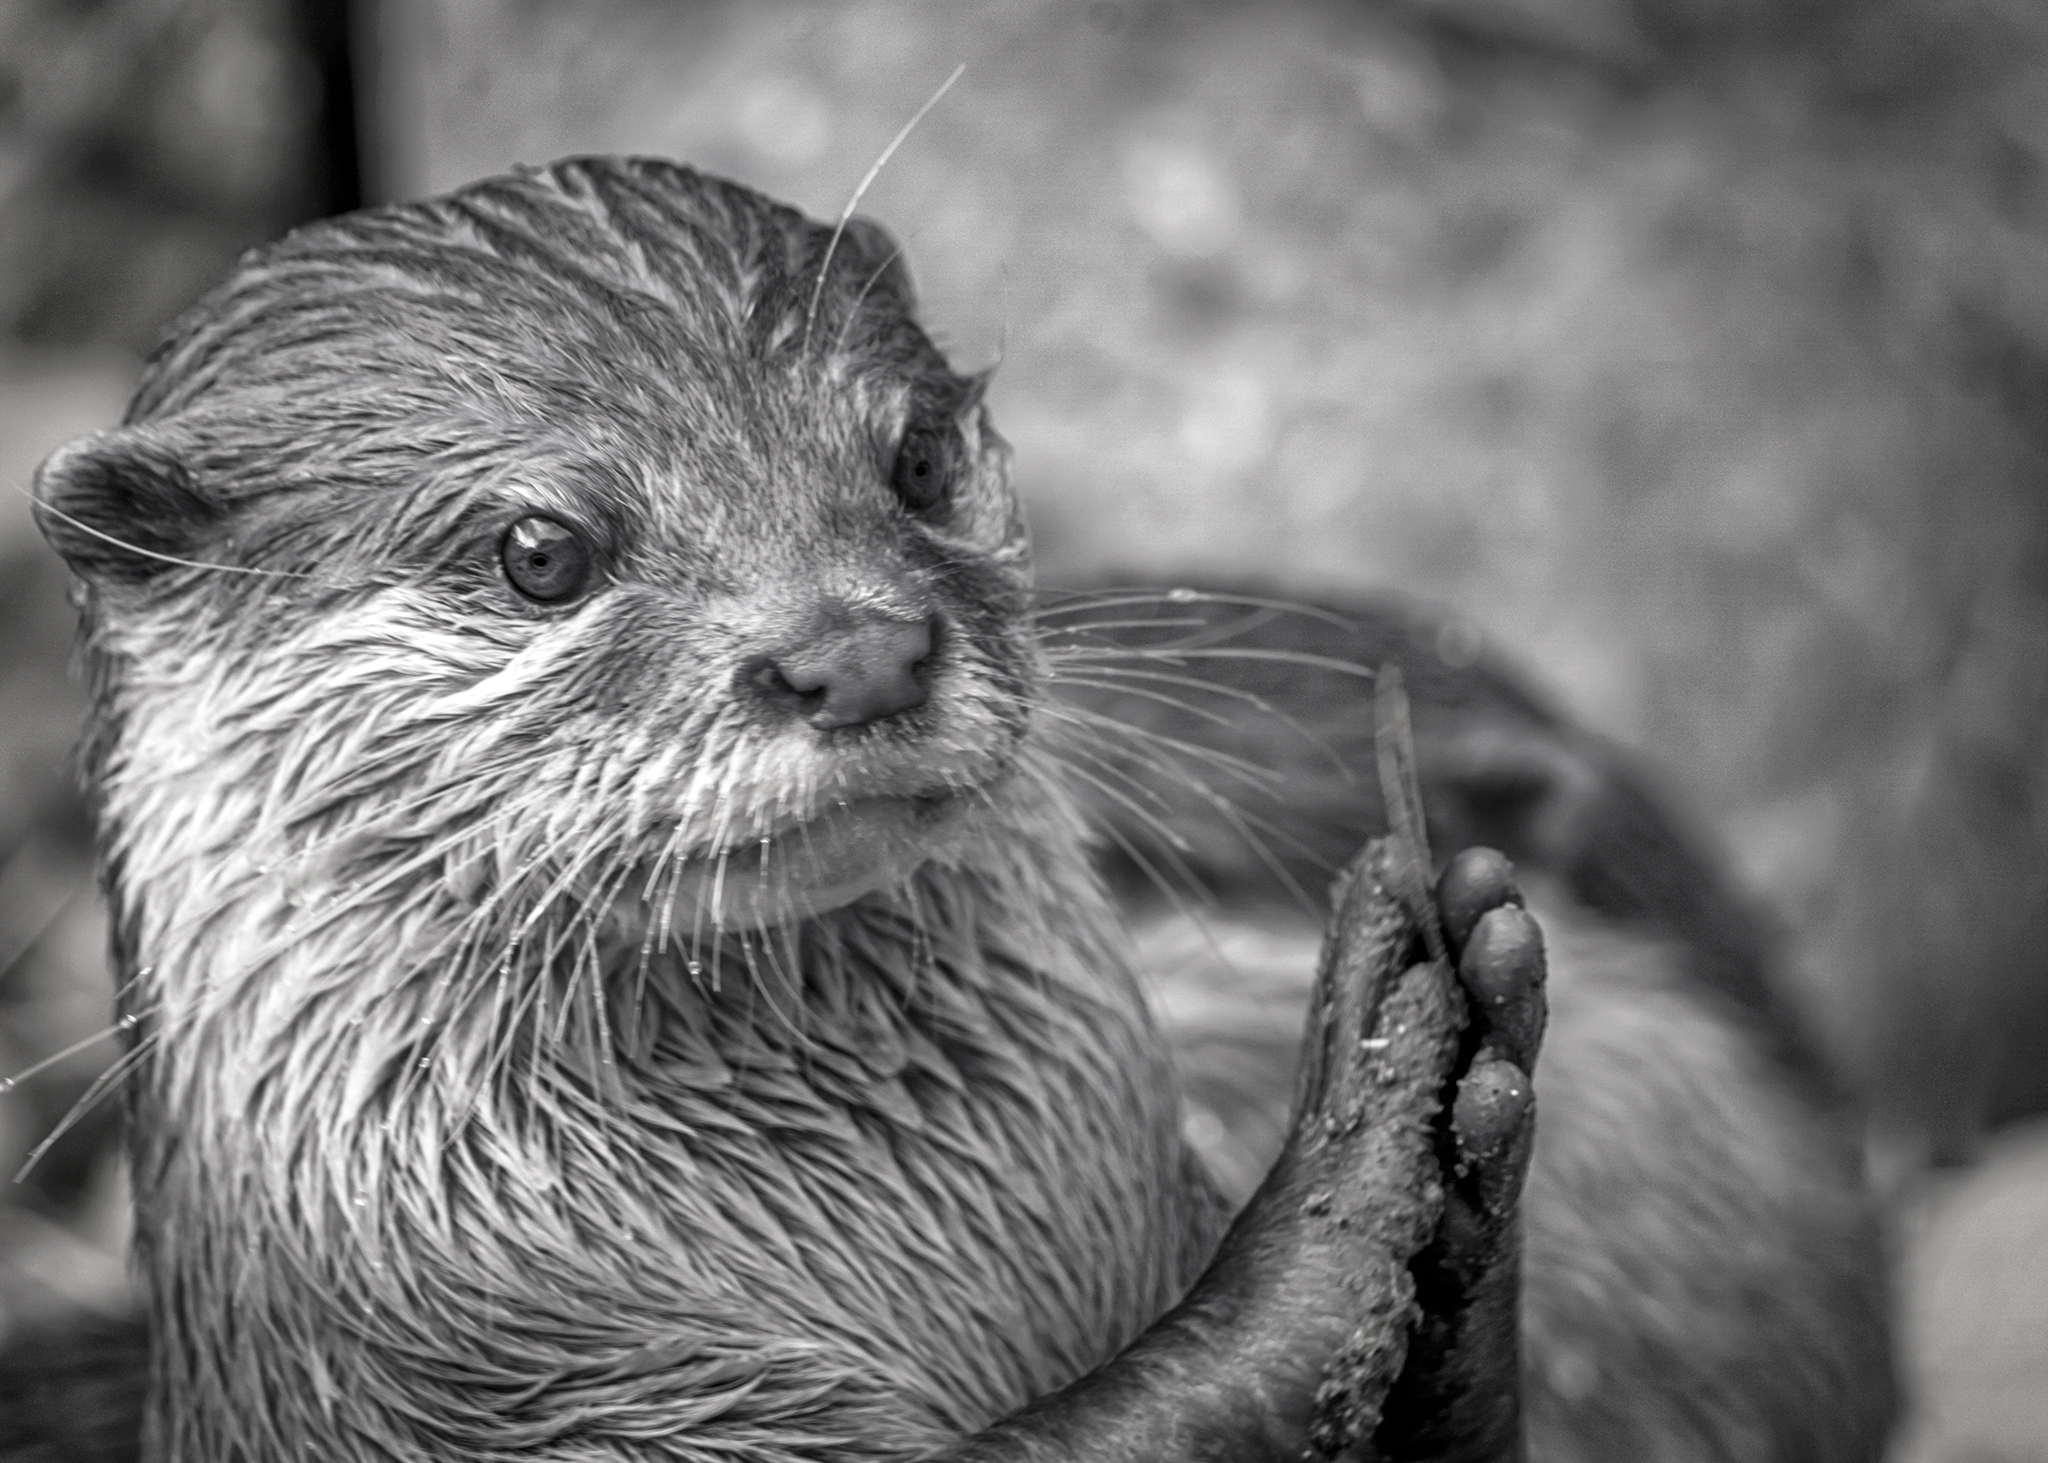 Otter clapping